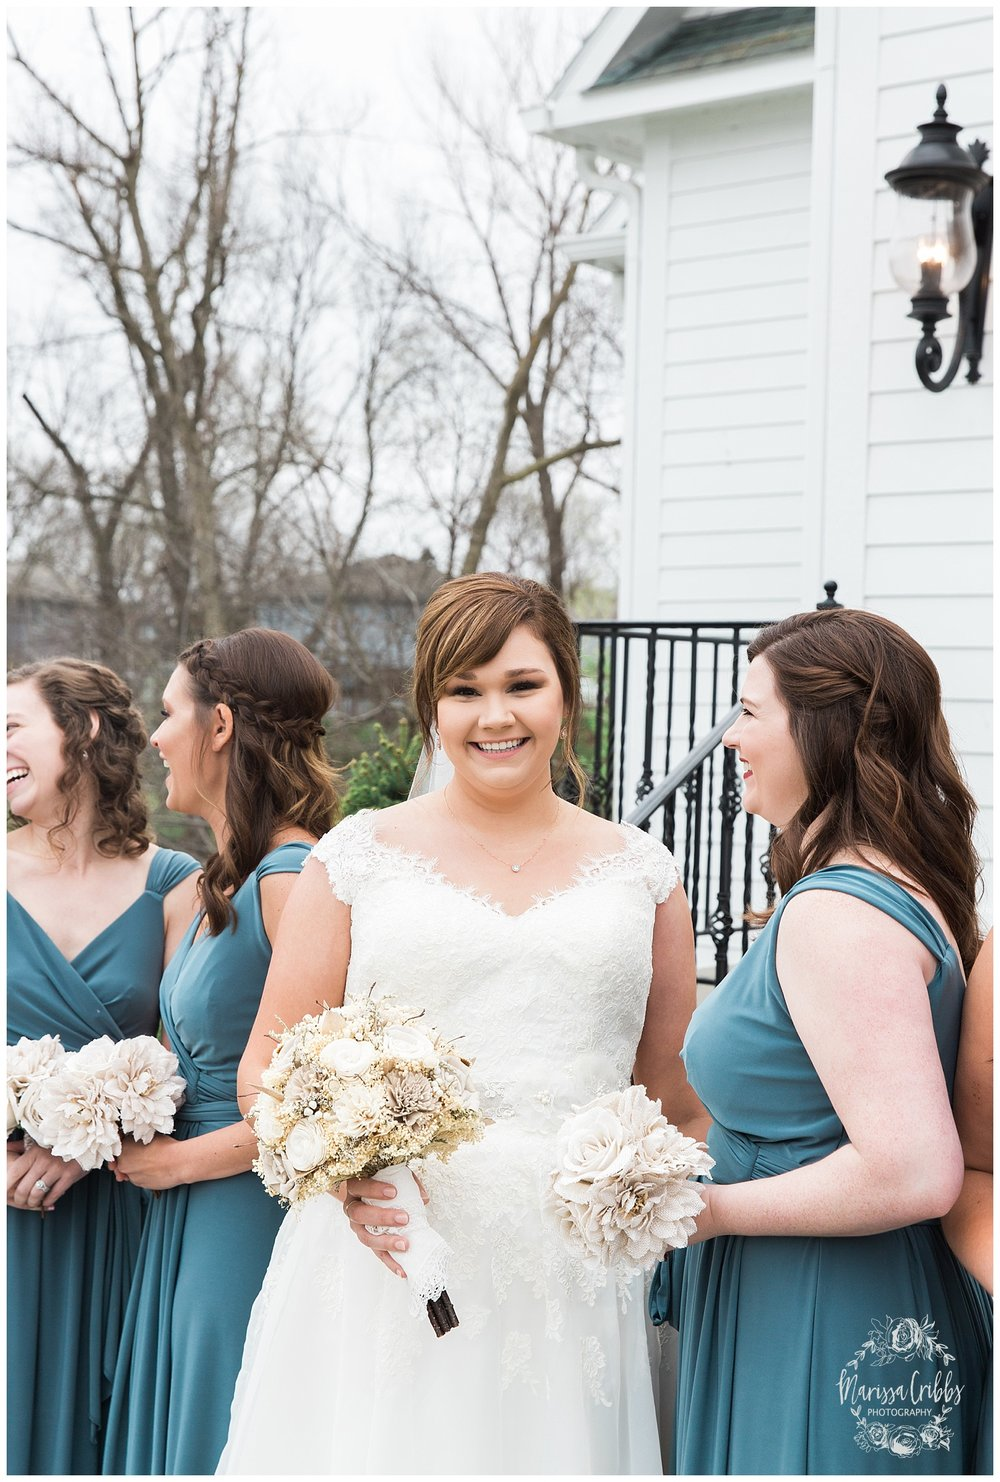 Hawthorne House Wedding | Katie & David | KC Photographers | Marissa Cribbs Photography | KC Wedding Photographers_0719.jpg